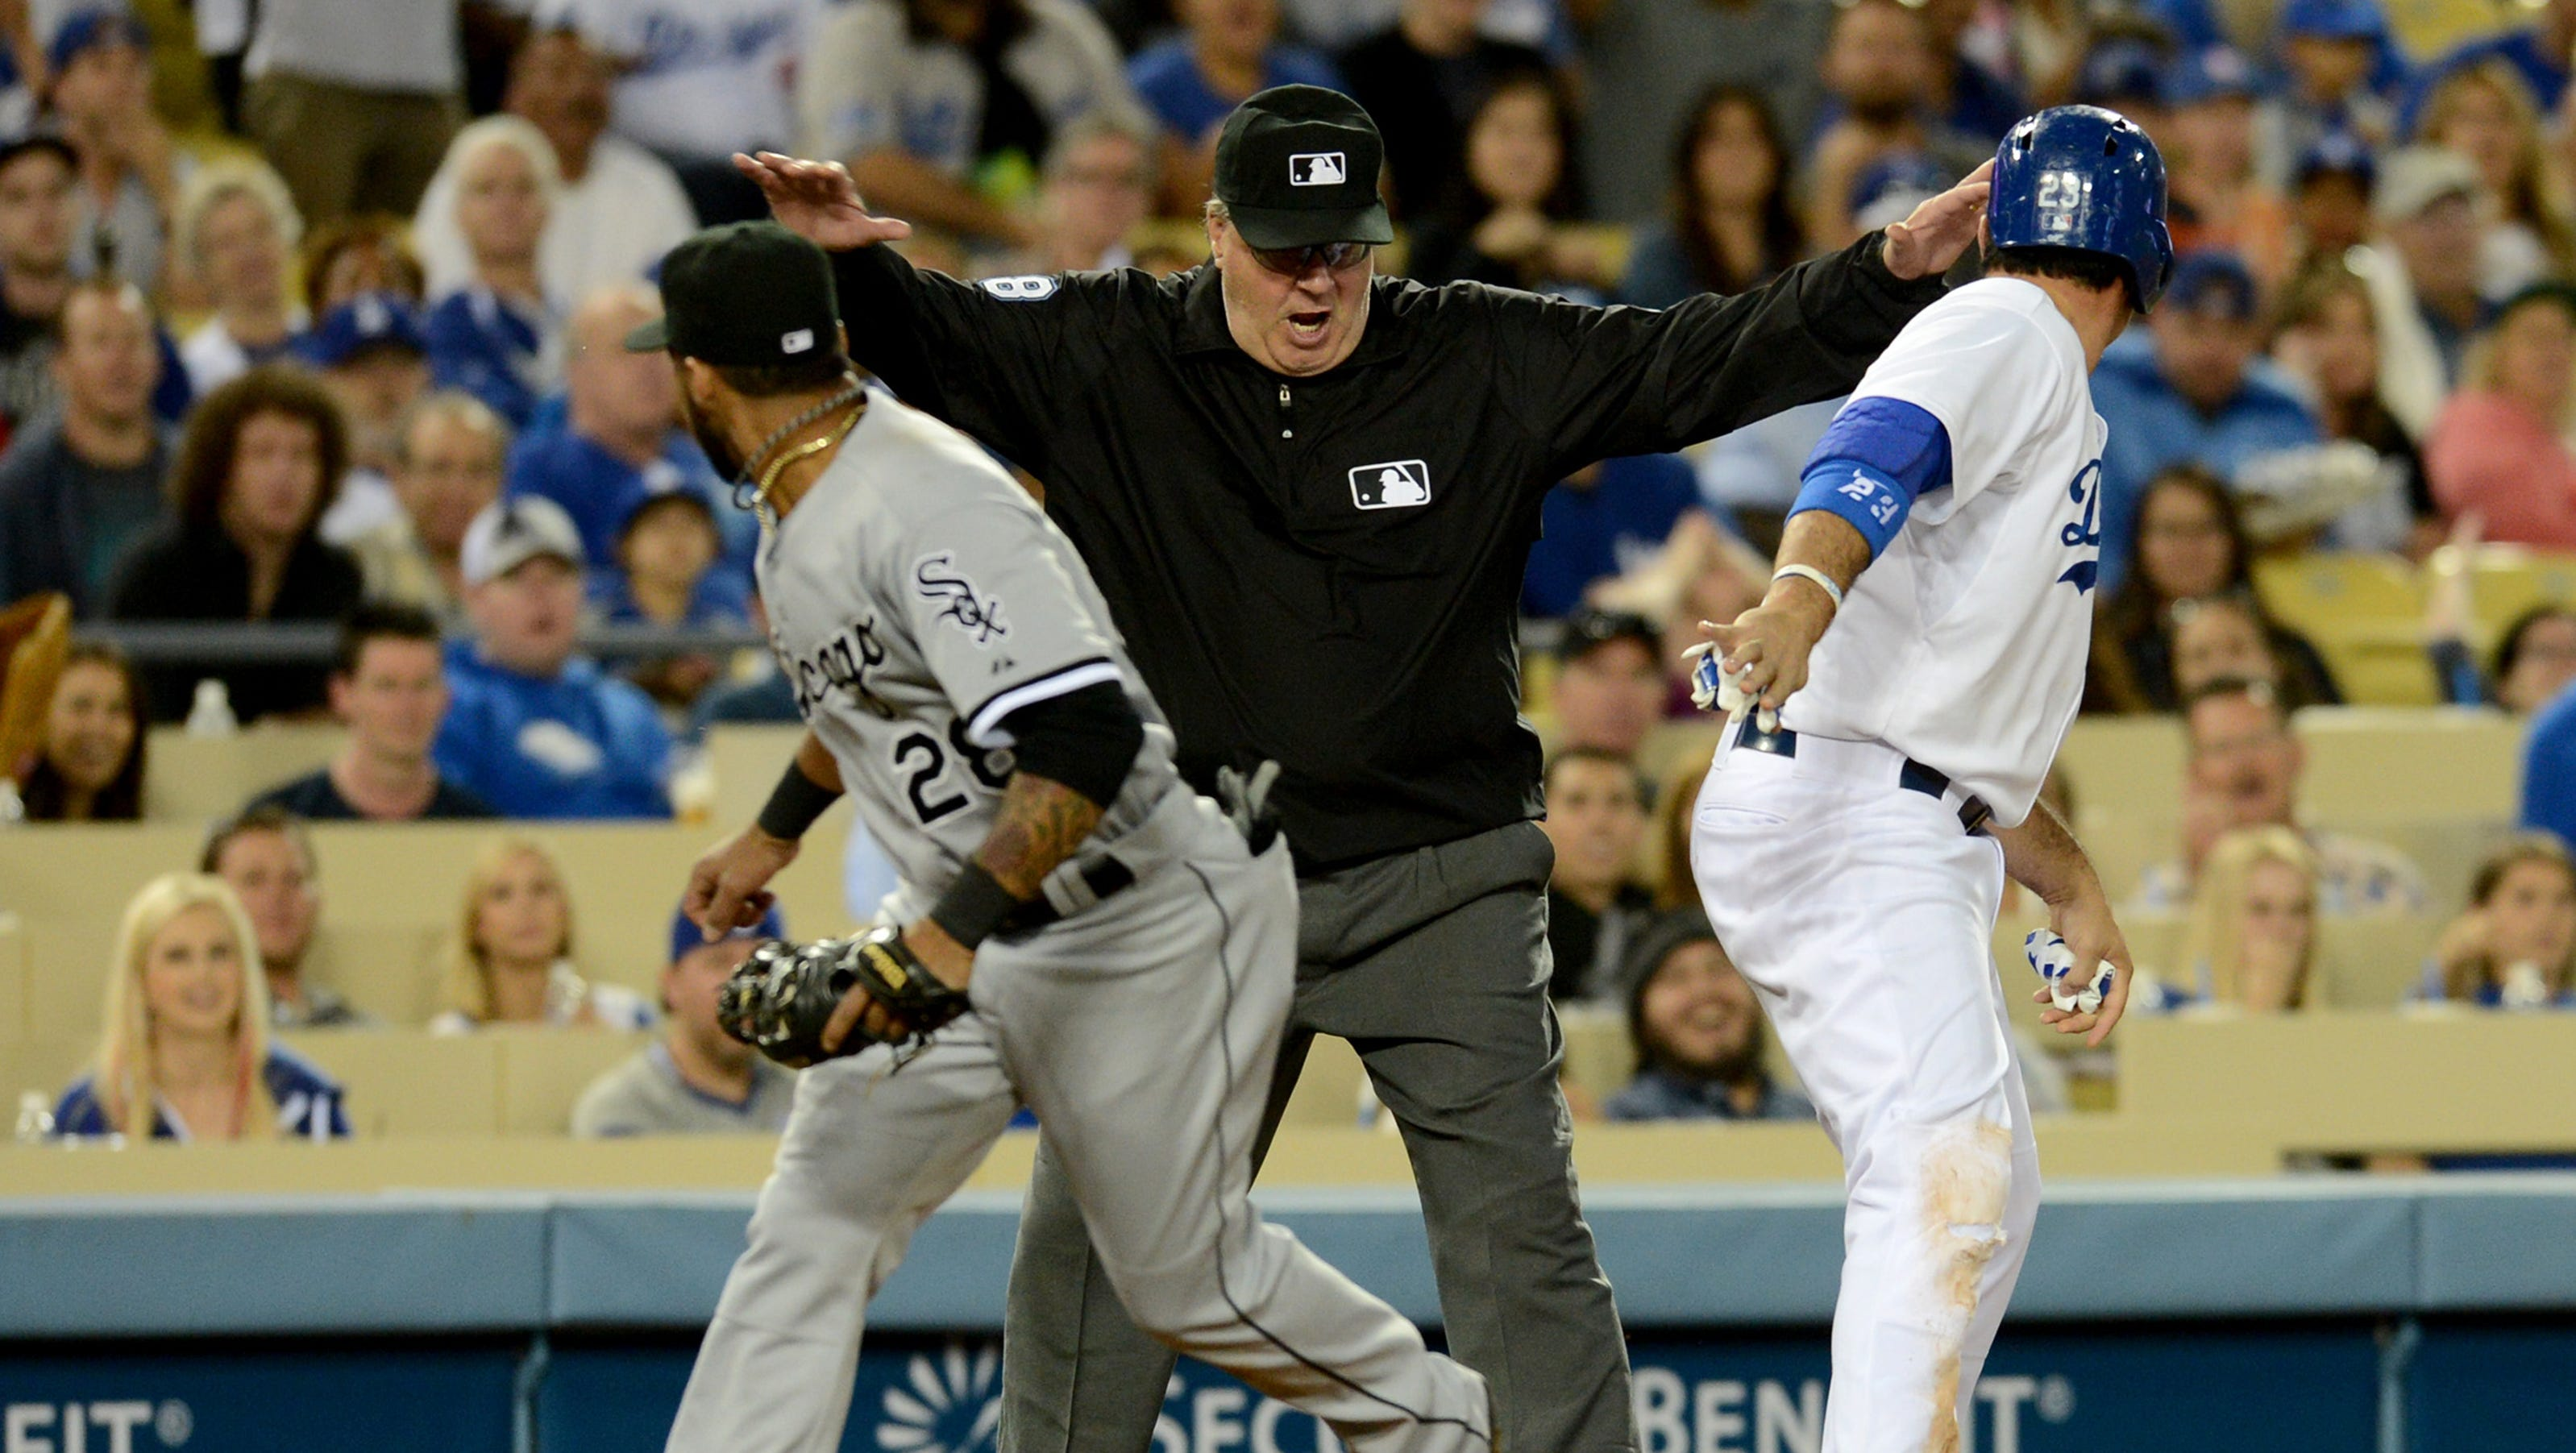 instant replay in baseball 1 montessori schools have more defined rules than baseball's replay guidelines the rules section on replay review totals approximately 8,500 words.